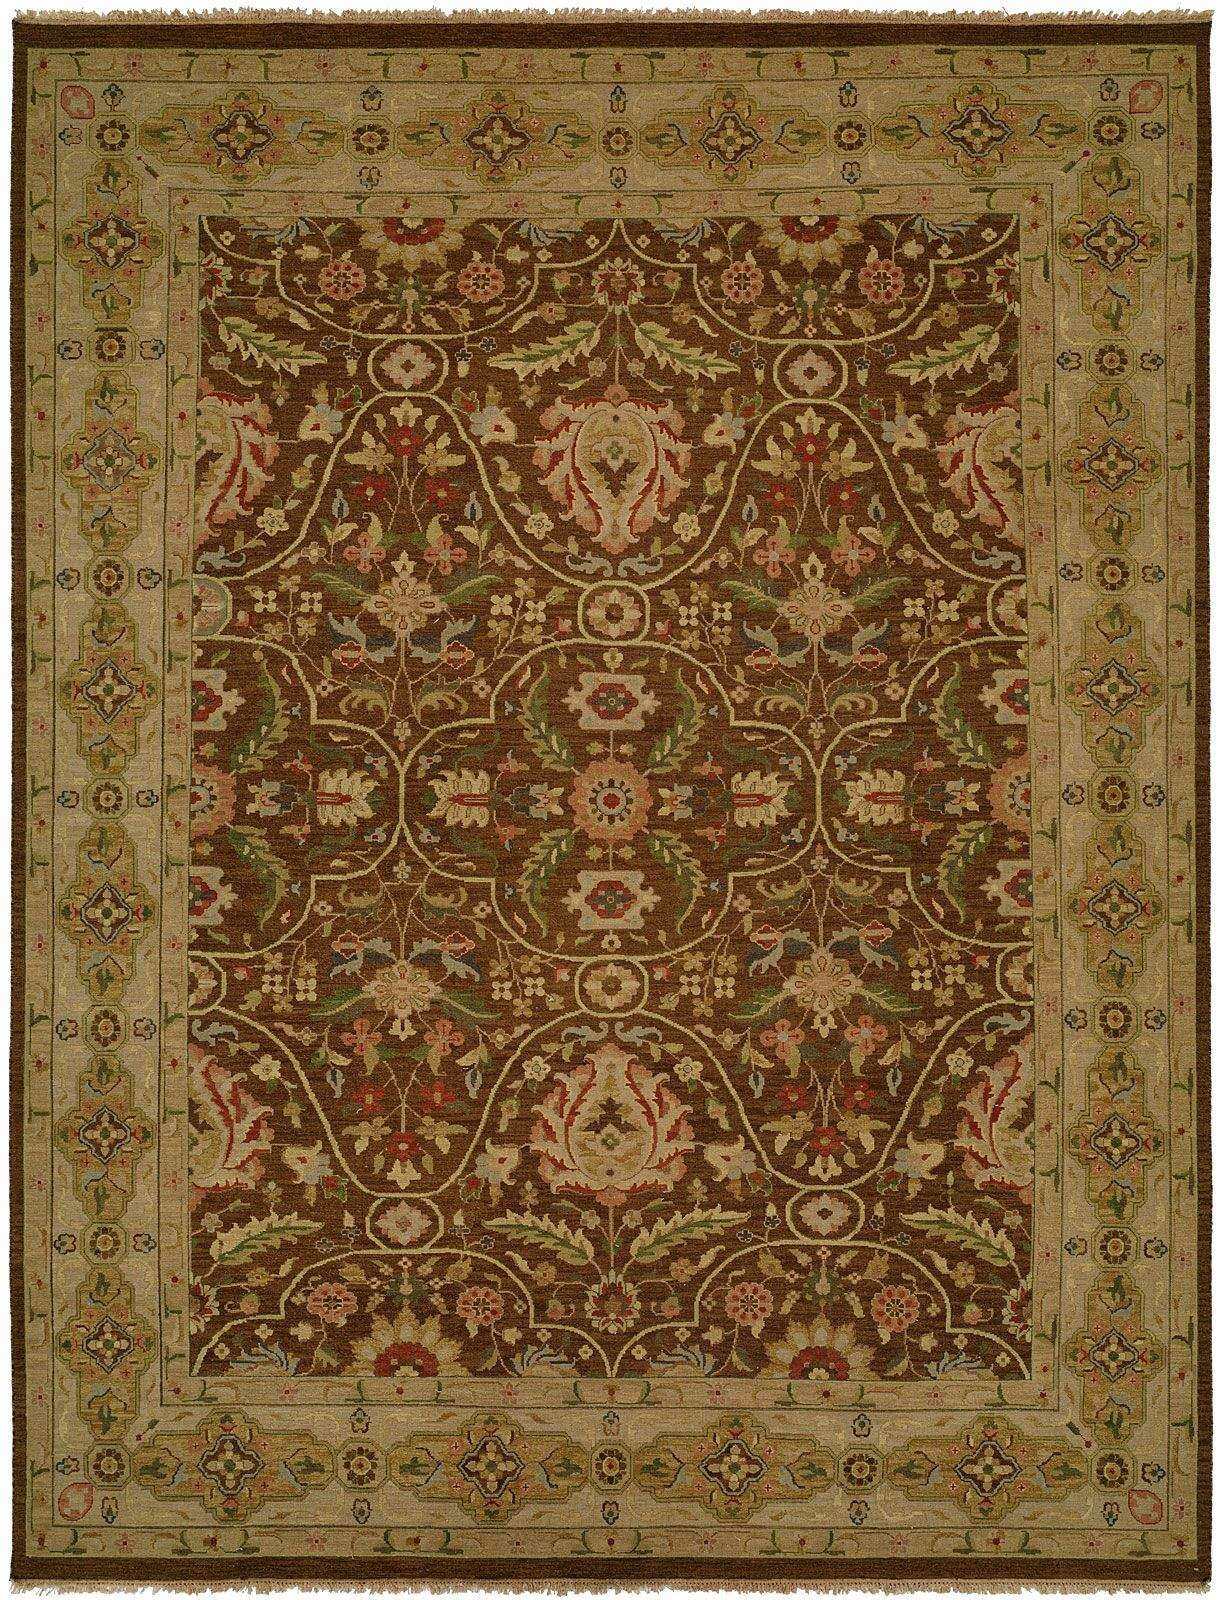 Dumka Hand-Knotted Fall Sienna Area Rug Rug Size: Rectangle 10' x 14'